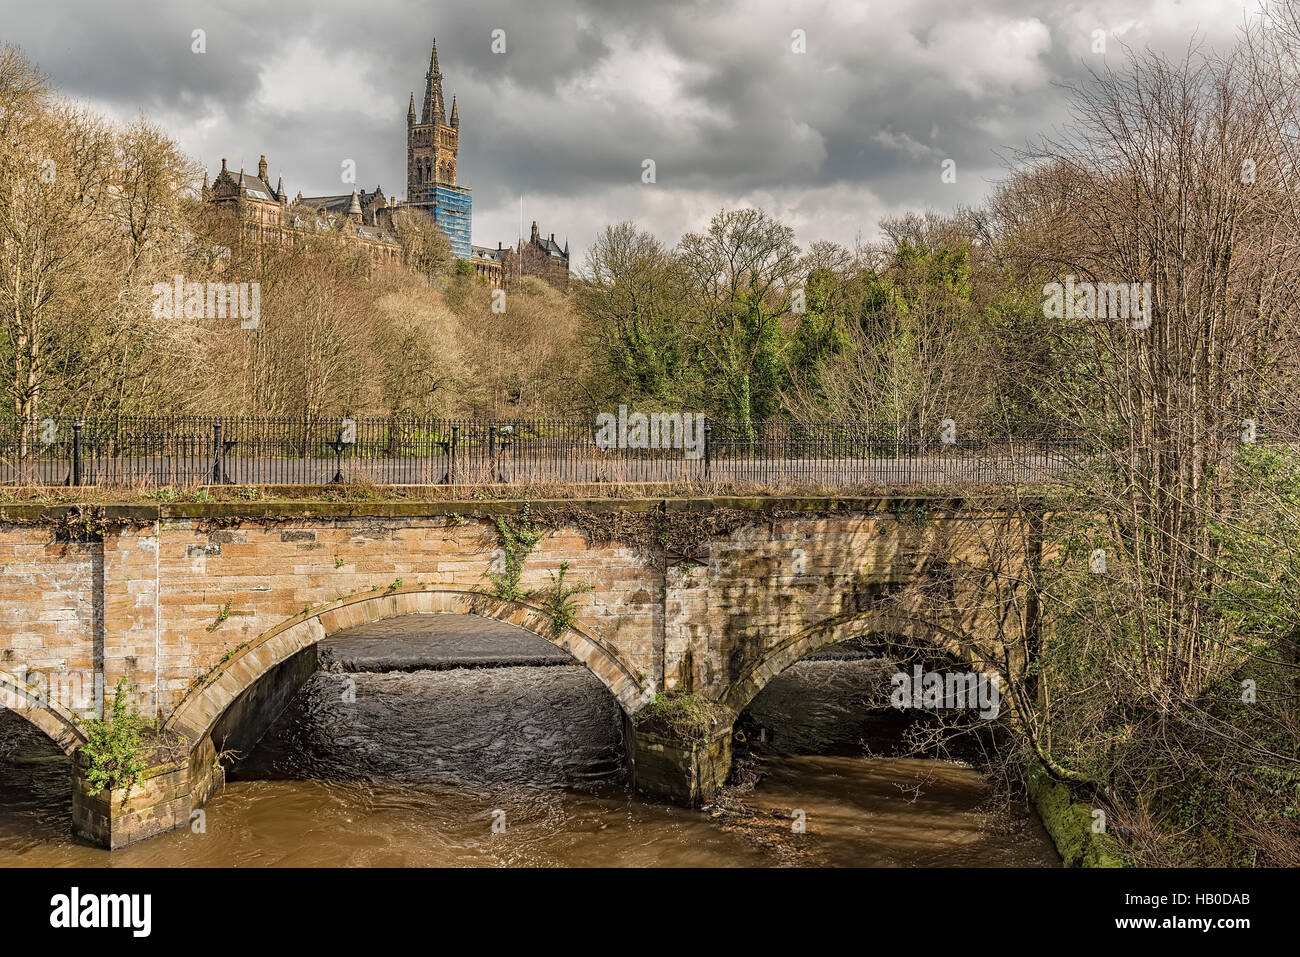 Glasgow university main building overlooks the river Kelvin in the west end of Glasgow, Scotland. - Stock Image